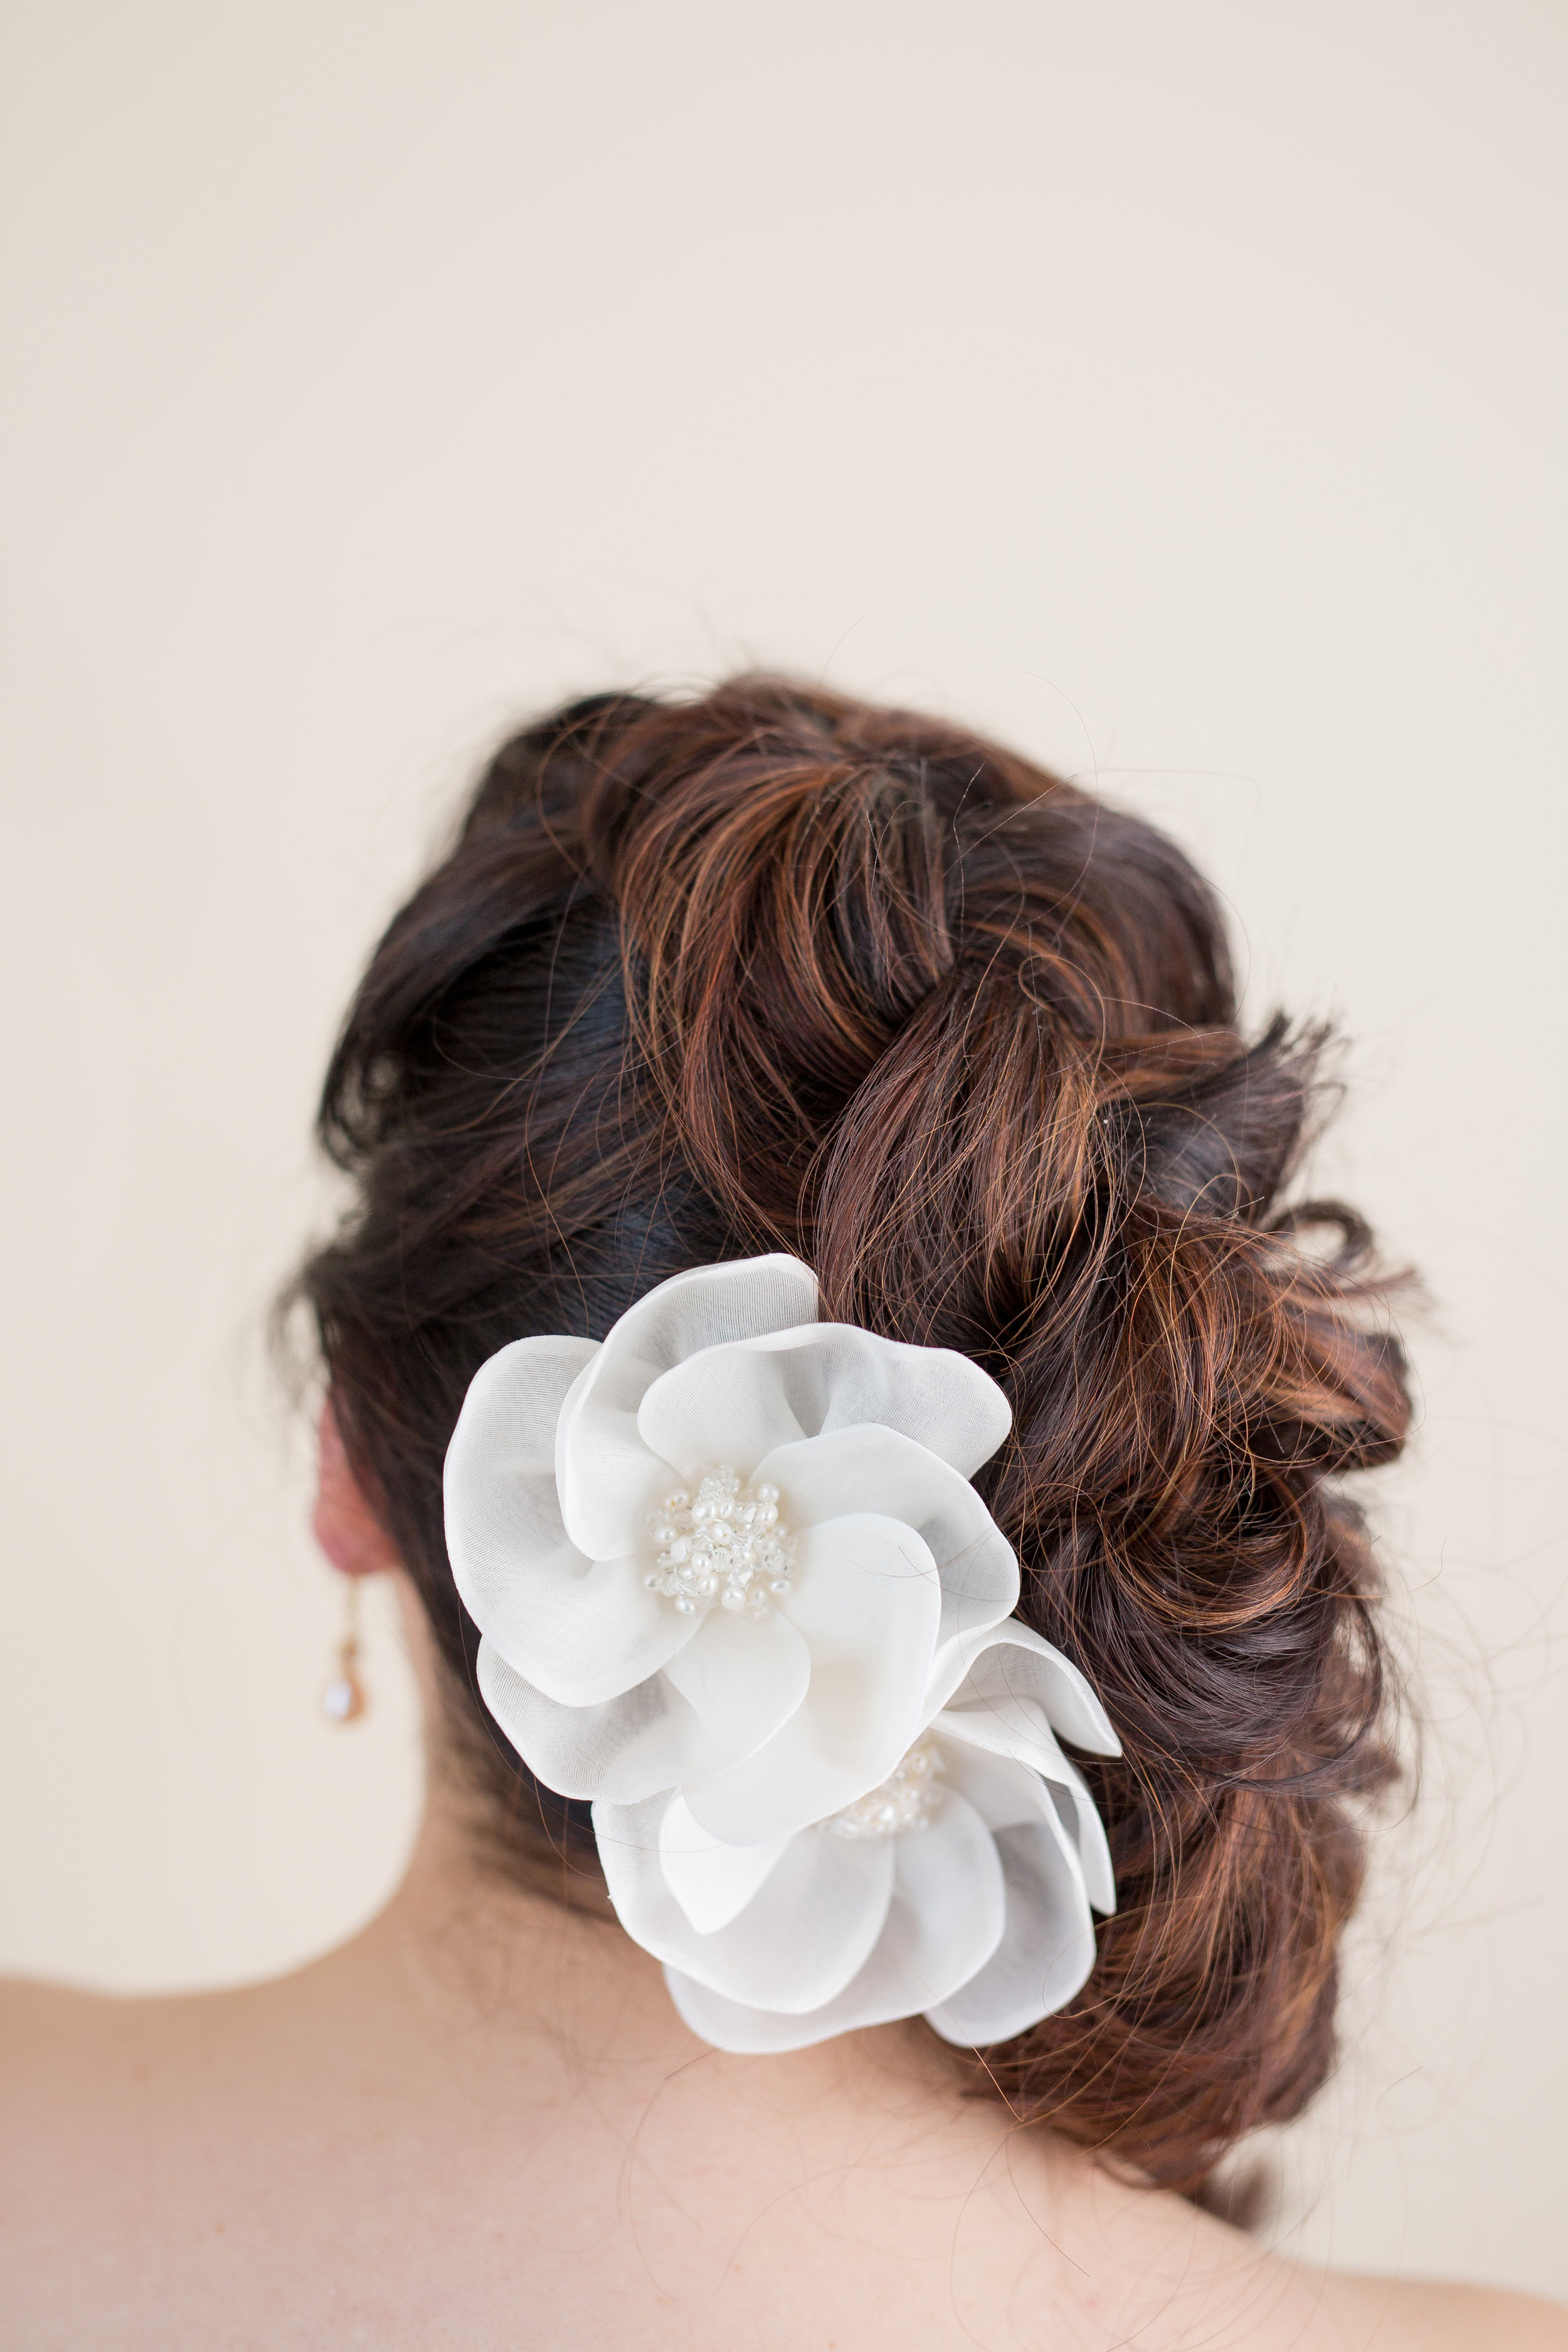 Organza flowers accented with pearls add some fun to any wedding hairstyle